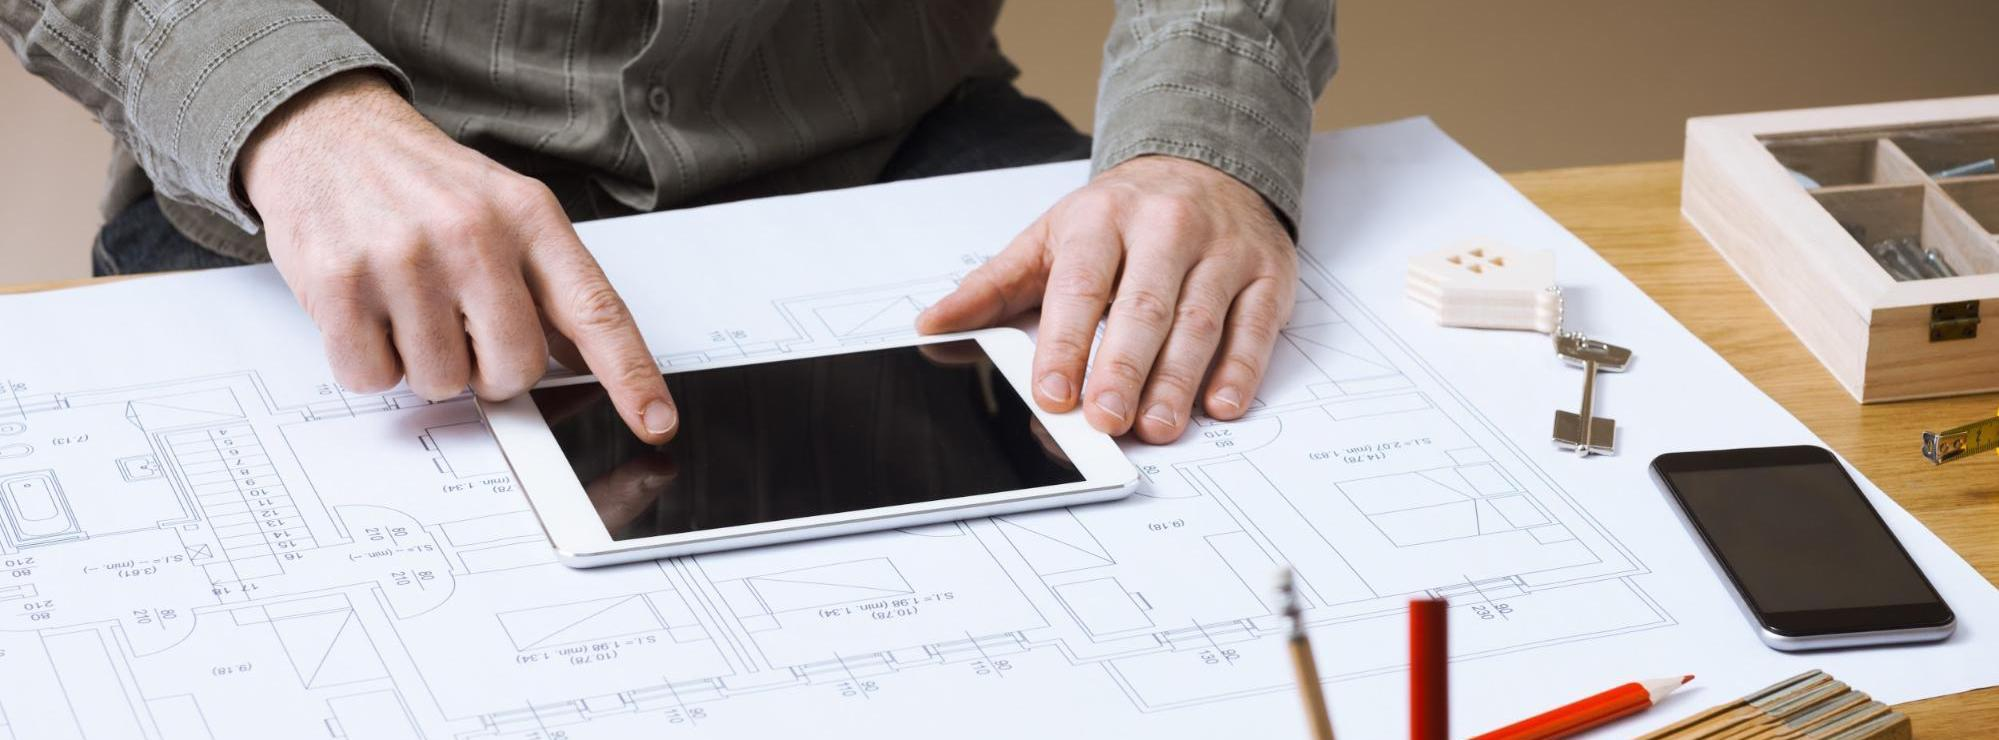 Construction blueprints tablet